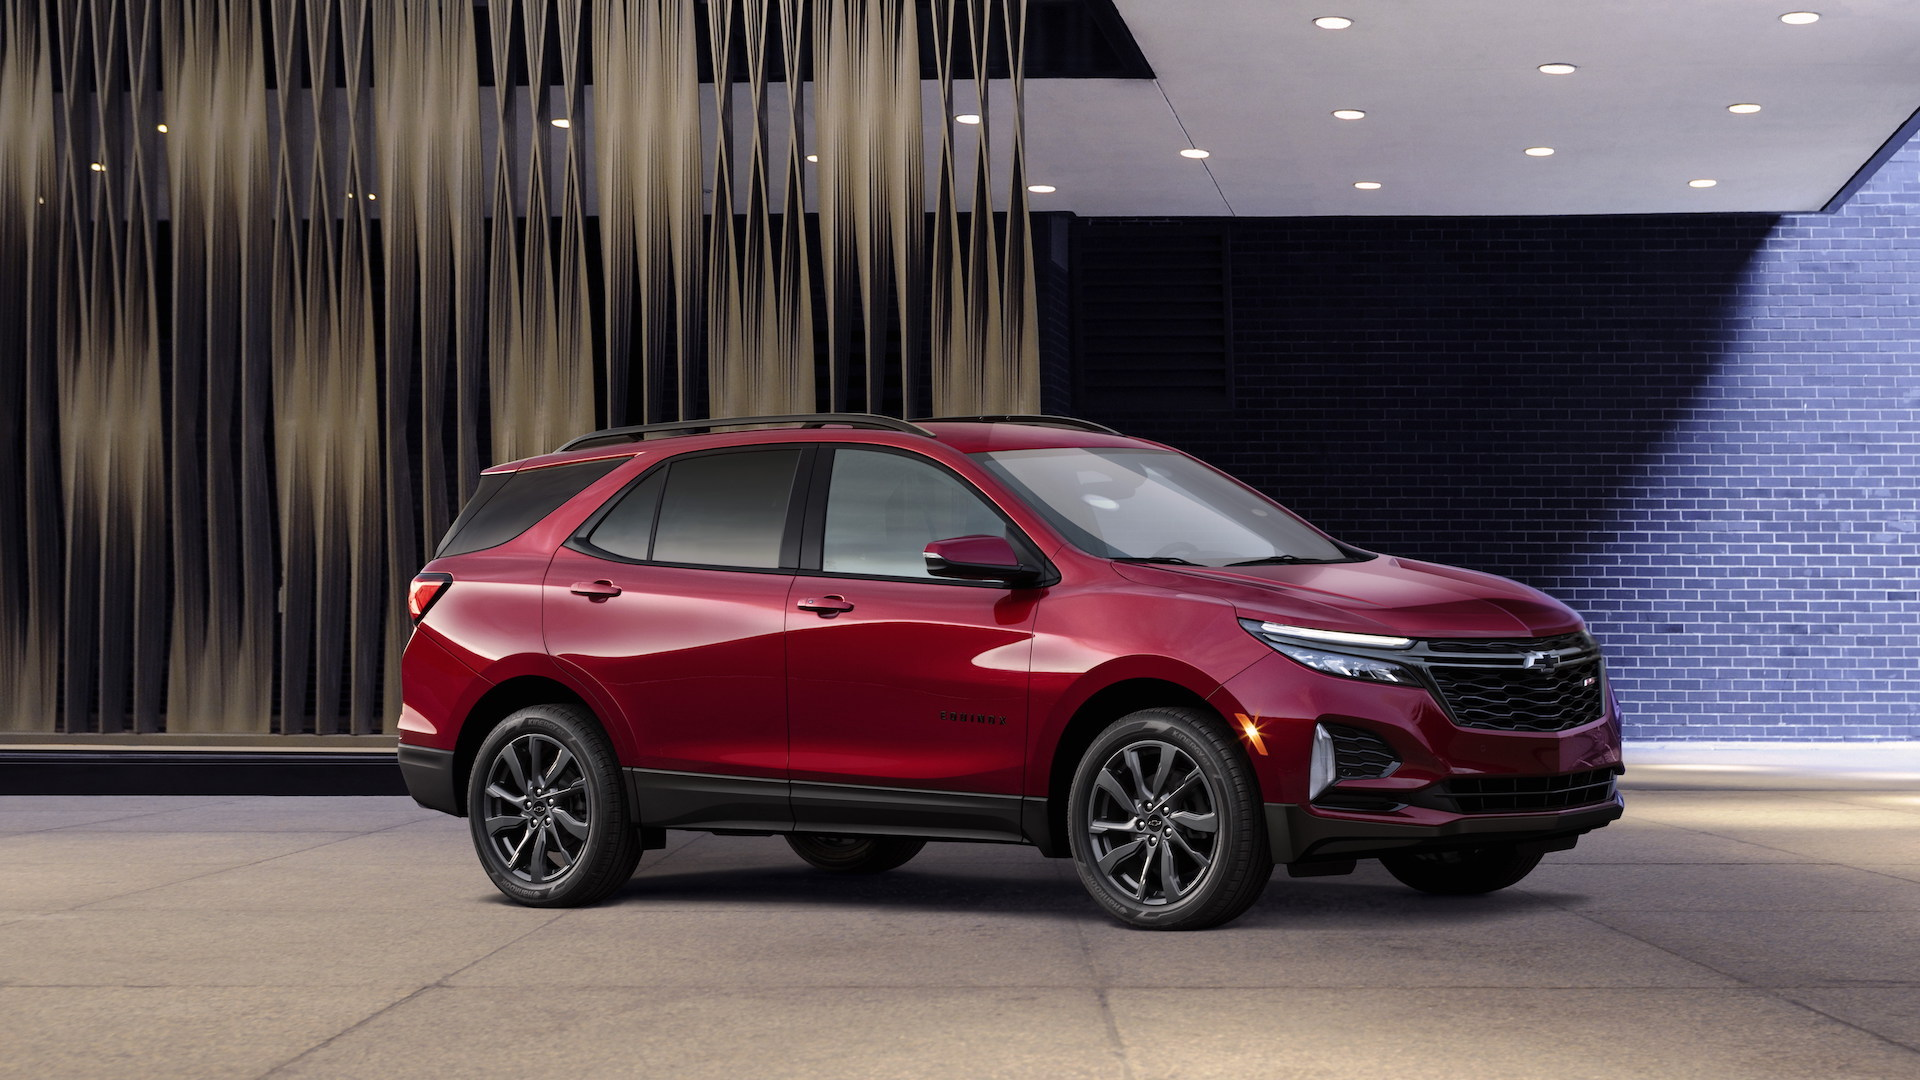 2021 Chevrolet Equinox takes cues from Blazer brother